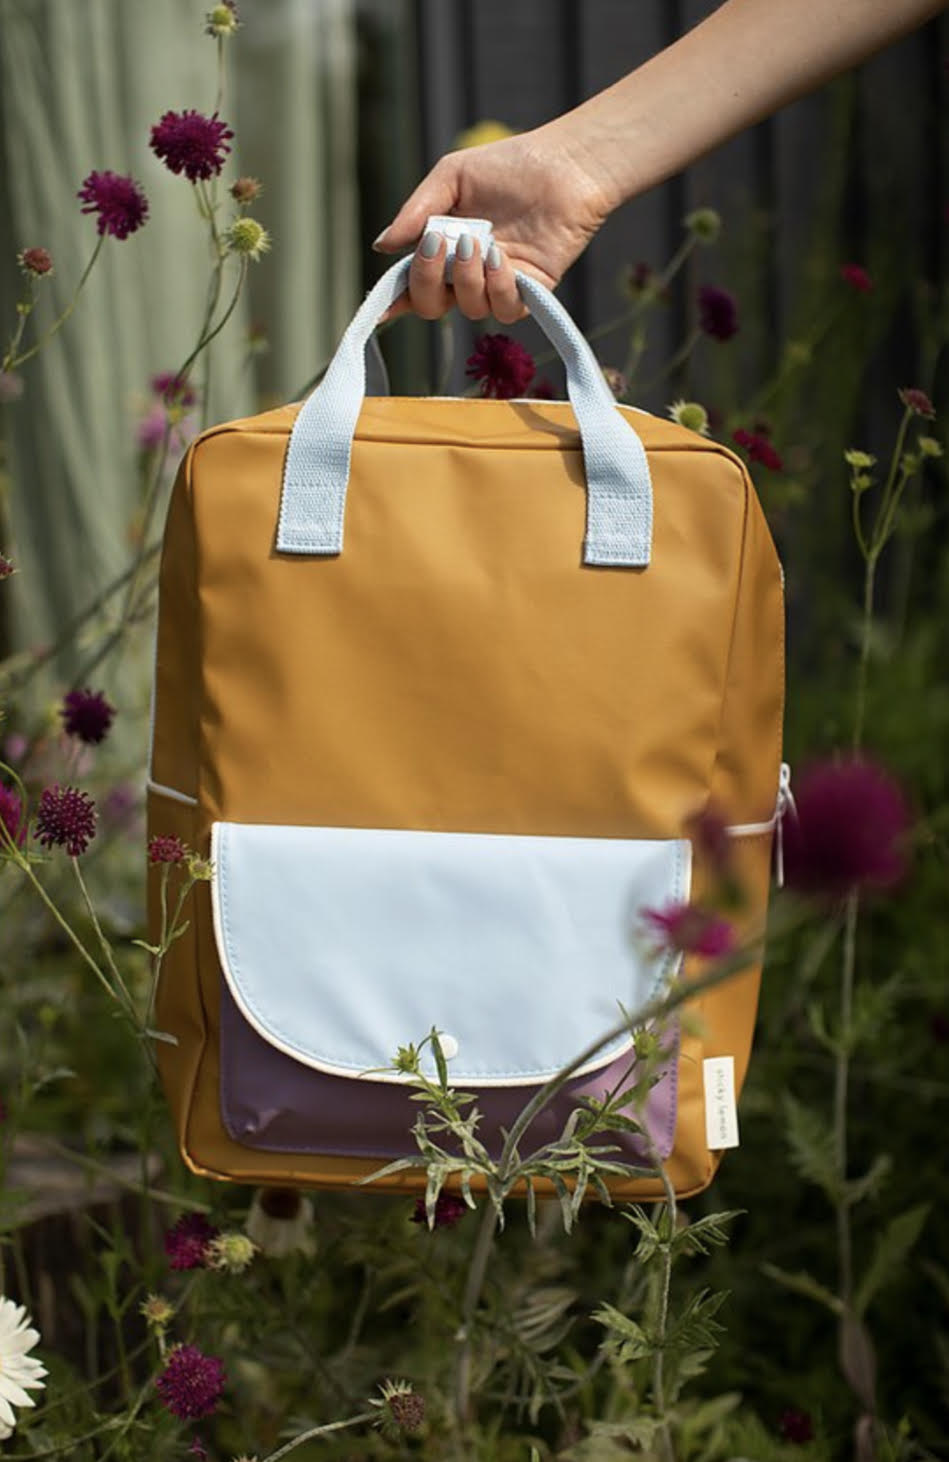 Sticky Lemon Large Backpack Wanderer - Caramel Fudge/Sky Blue/Pirate Purple